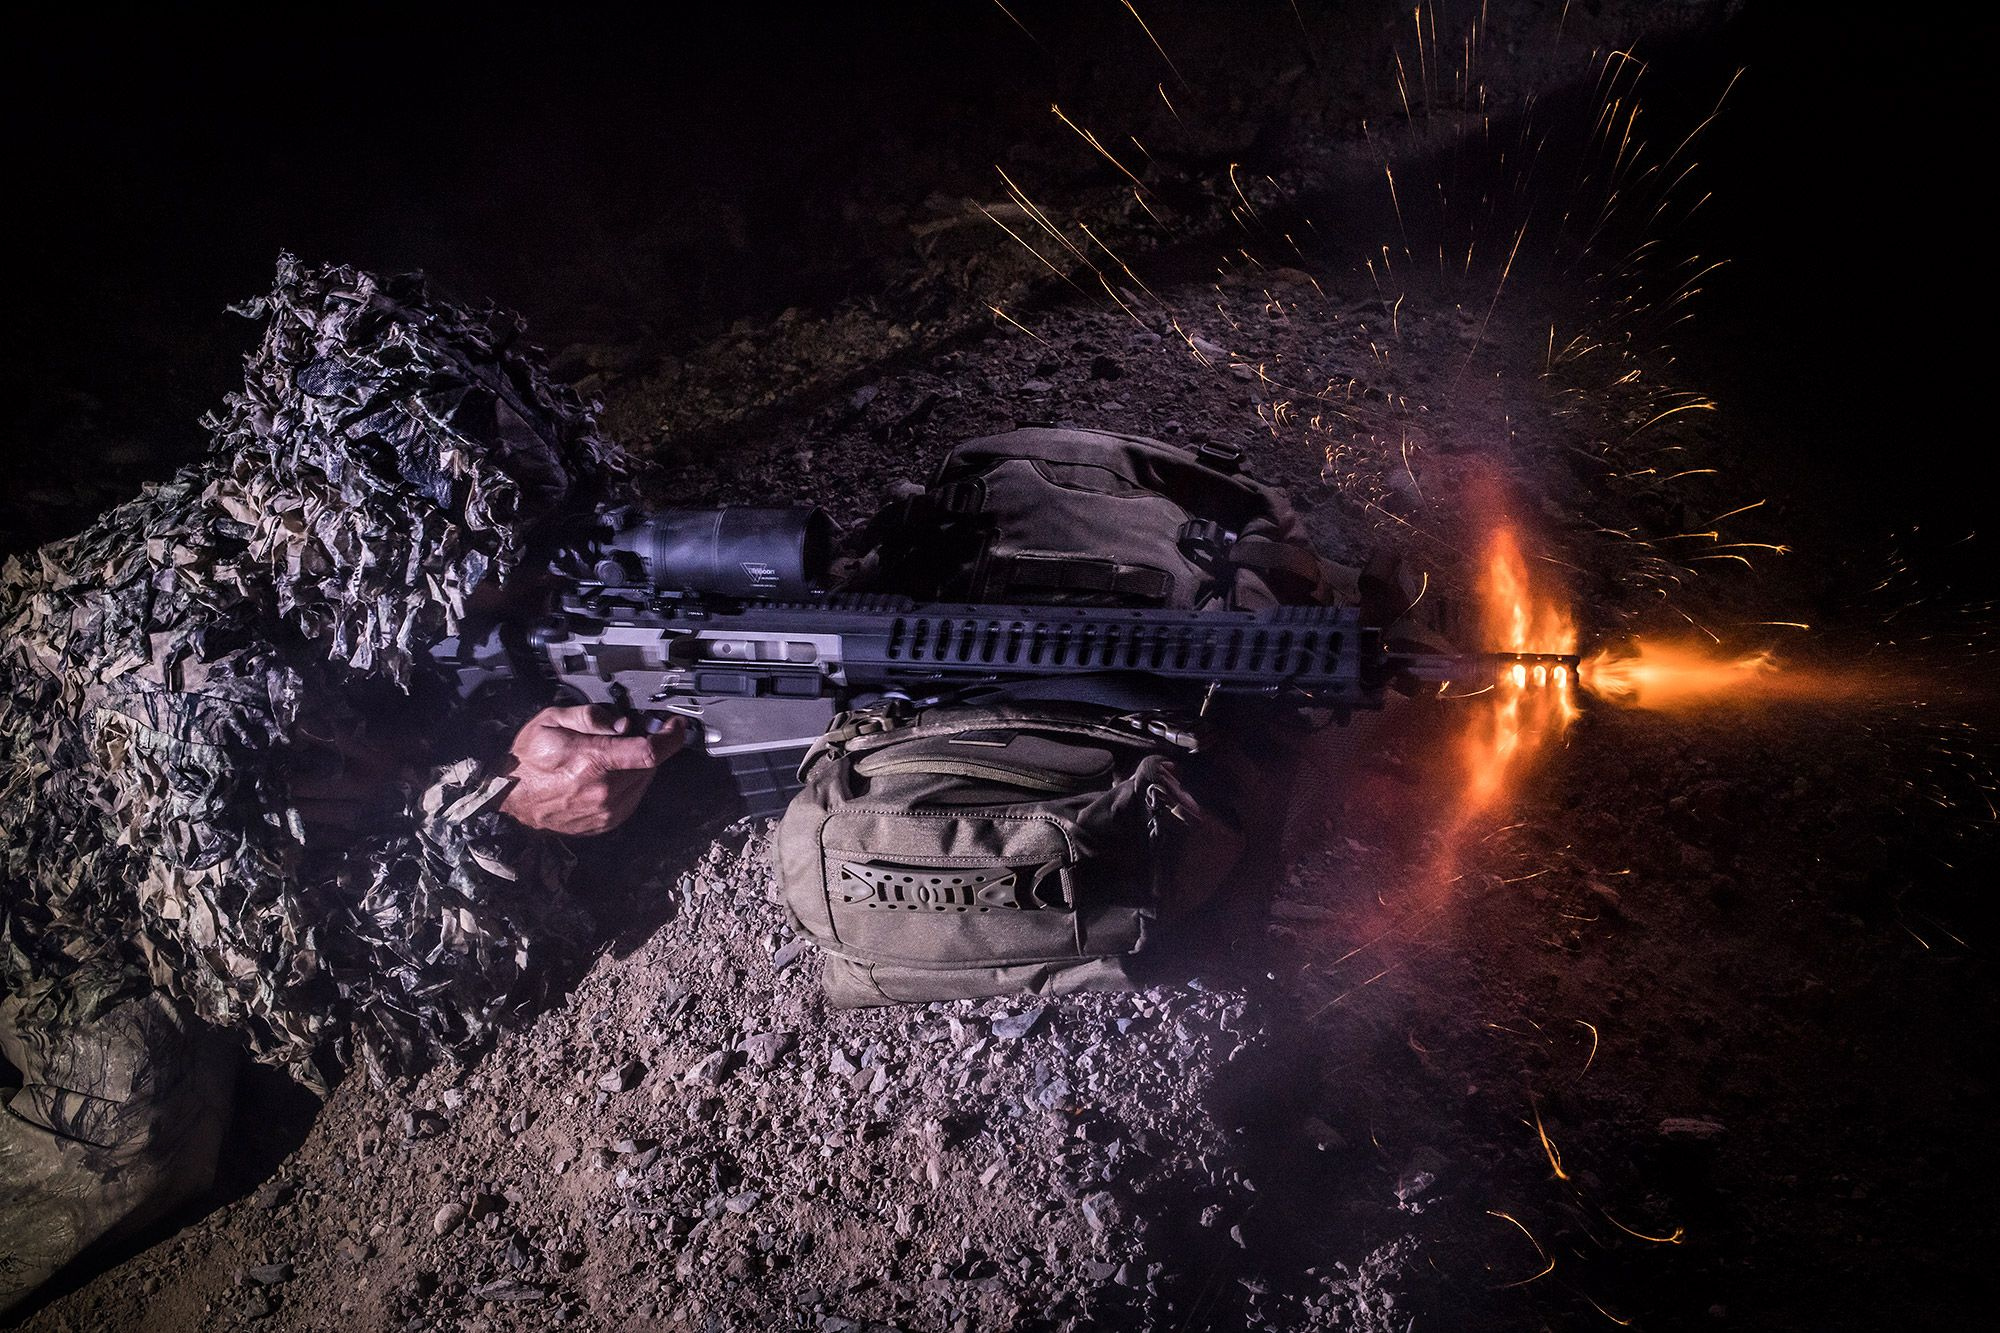 The IR-HUNTER in action. Checkout the thermal @ Trijiconeo.com #gun #thermal #nightvision #hunting #tactical #trijicon #guns #Nightvision